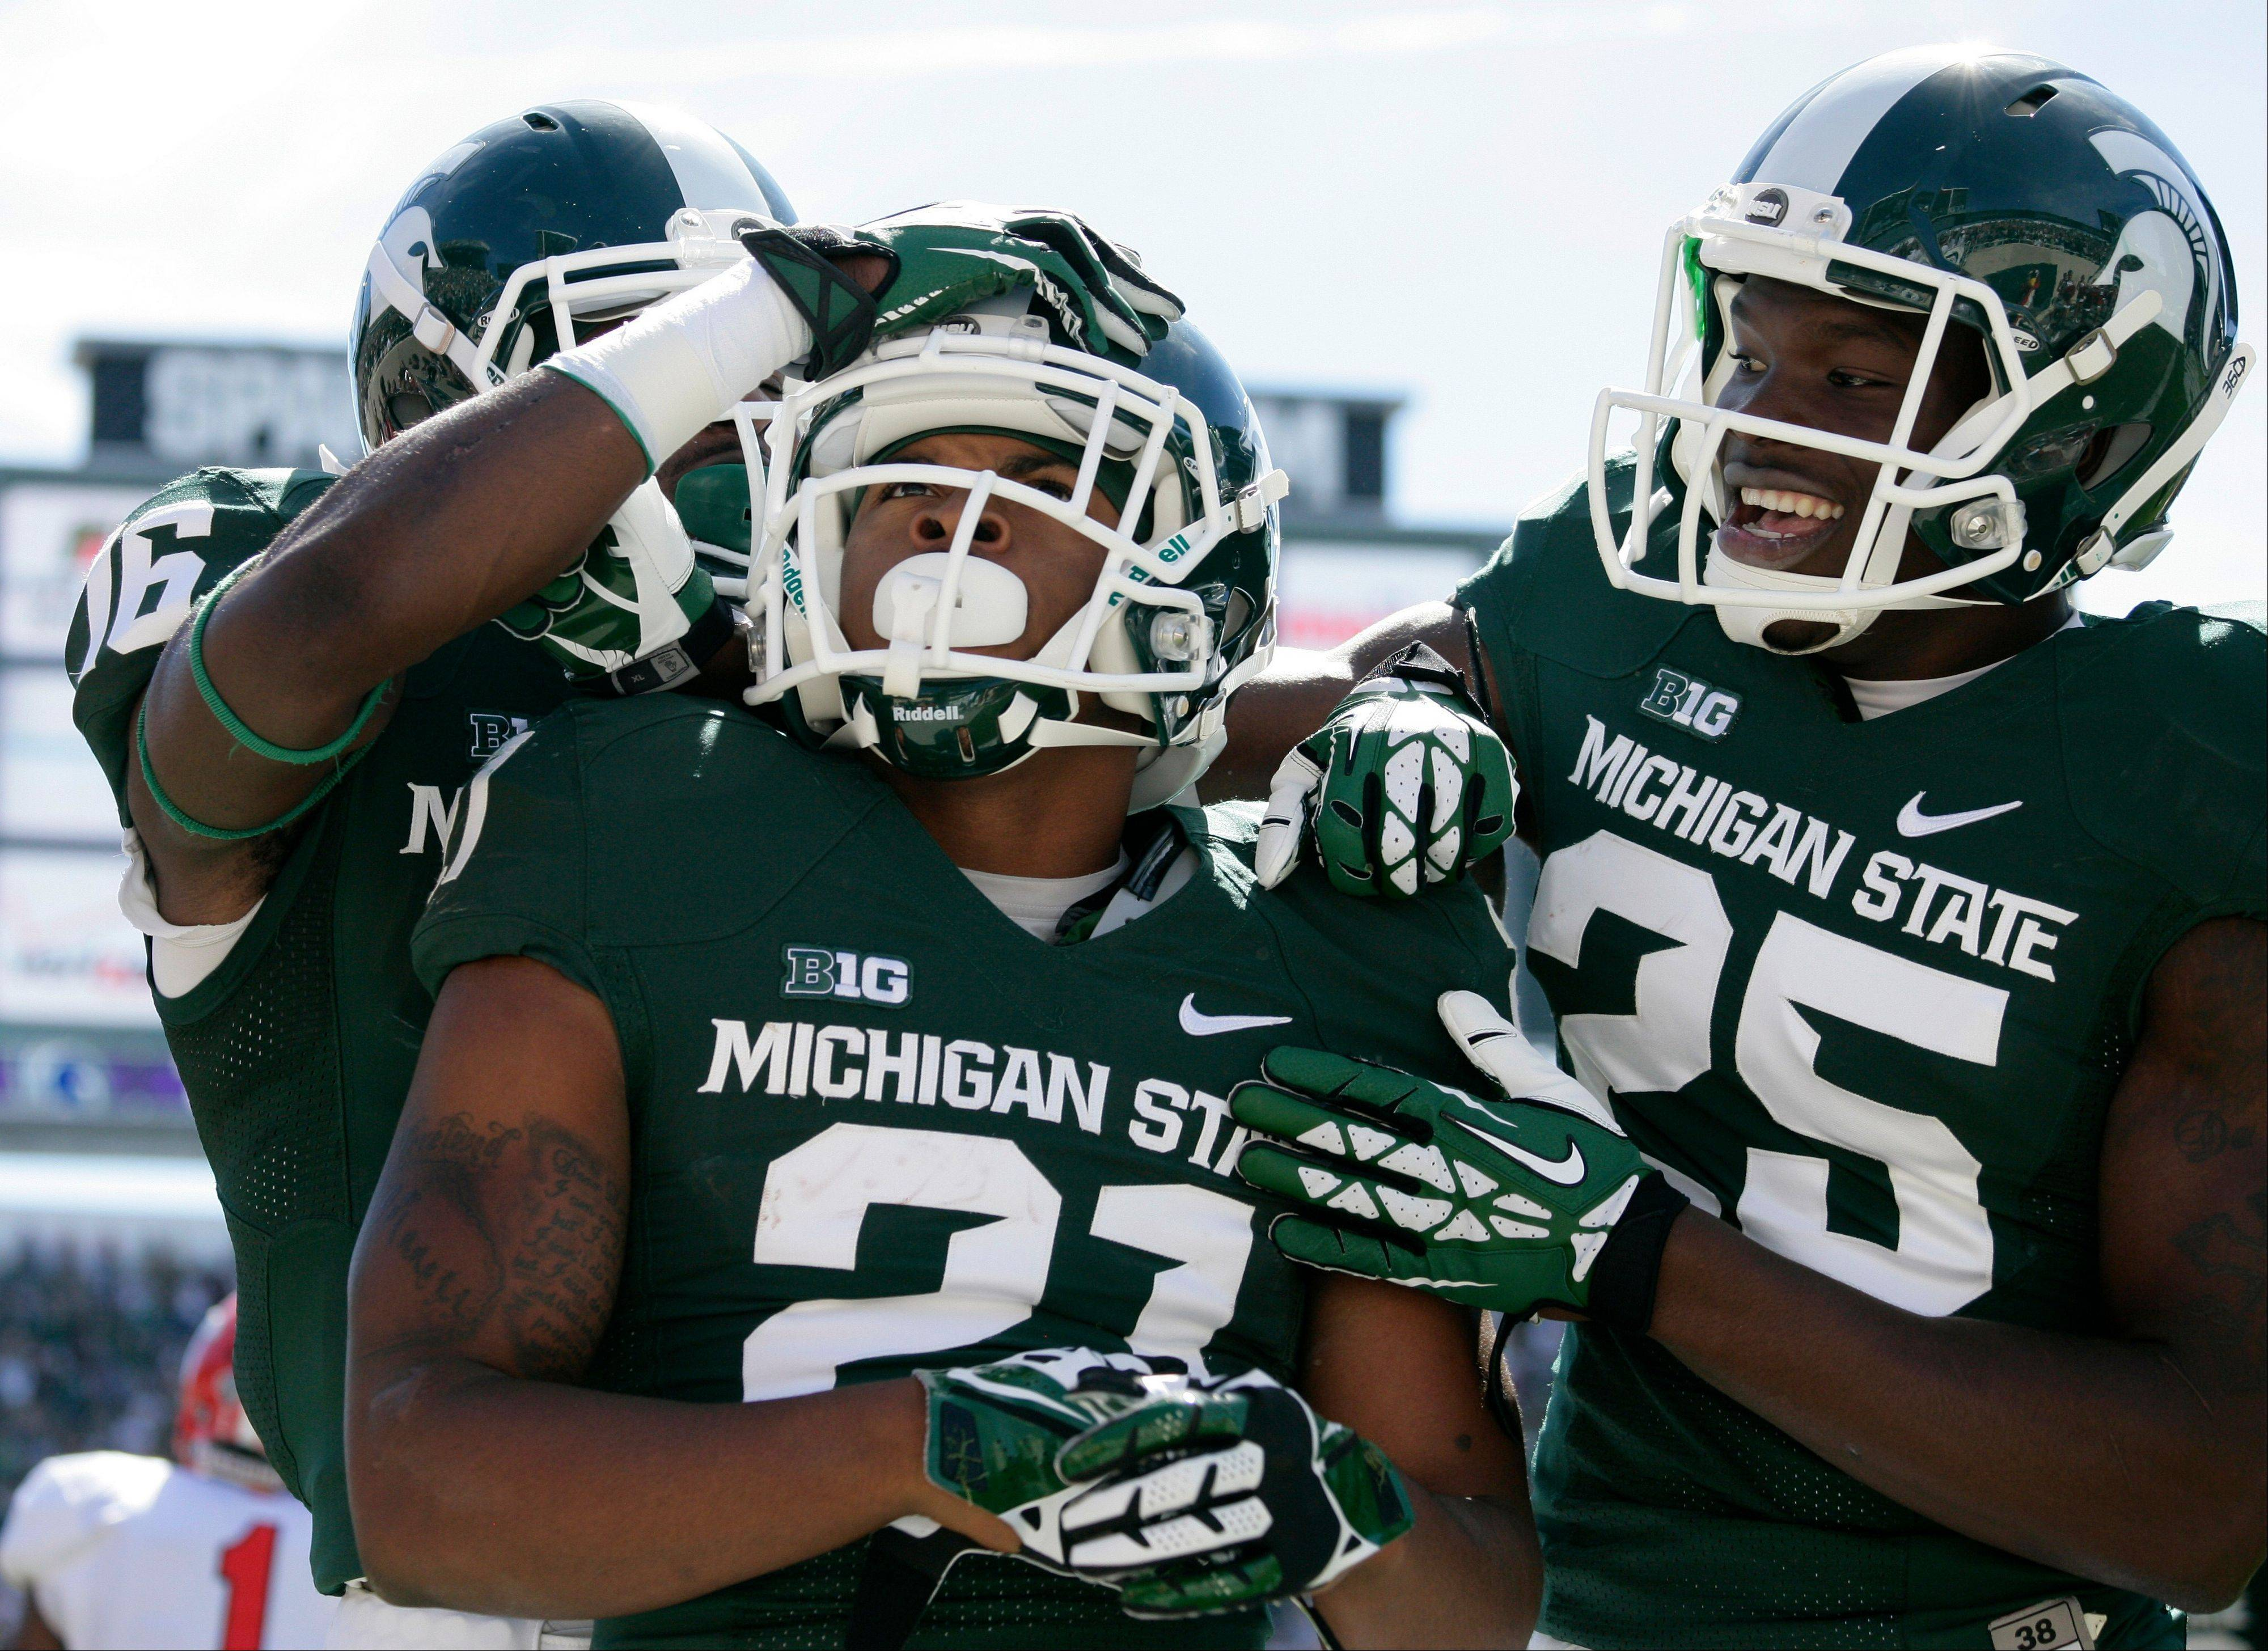 Michigan State receivers Andrew Sims Jr., center, Aaron Burbridge (16) and Keith Mumphery (25) celebrate Sims' touchdown during the first quarter of an NCAA college football game against Youngstown State, Saturday, Sept. 14, 2013, in East Lansing, Mich.